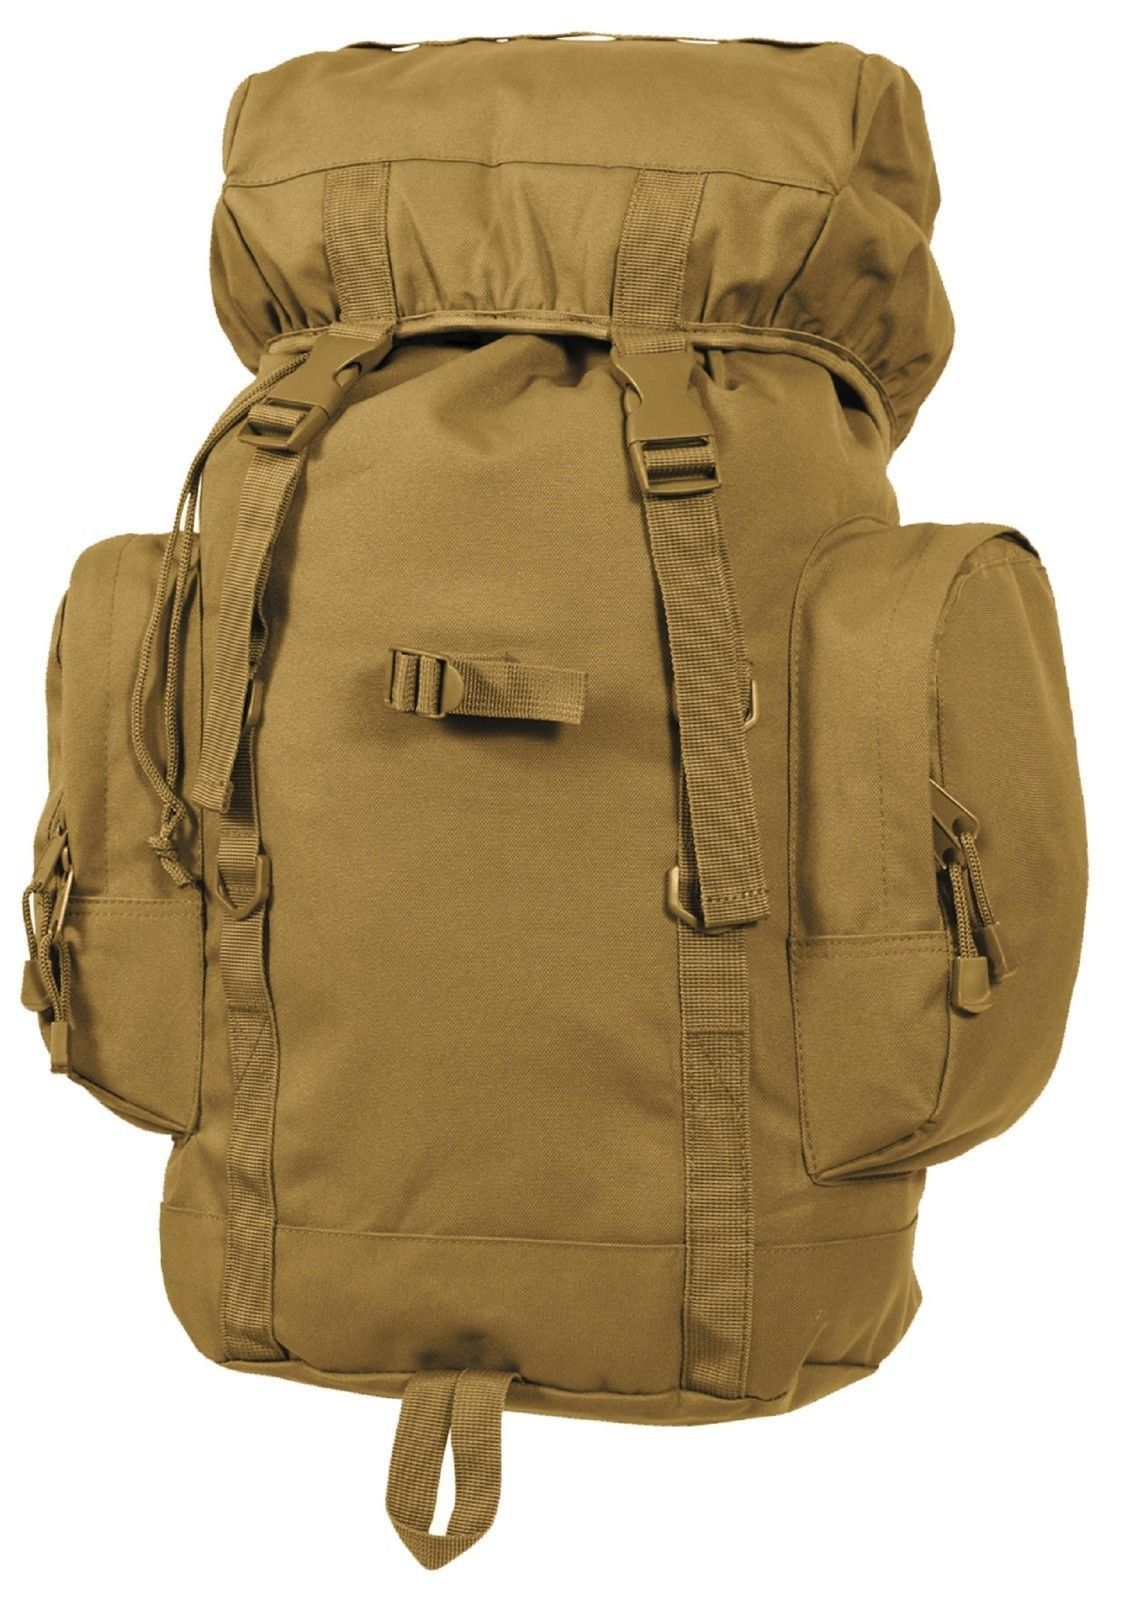 019f8f2d52 The 45L Tactical Backpack Will Have You Ready For Any Mission - Dimensions   22.5